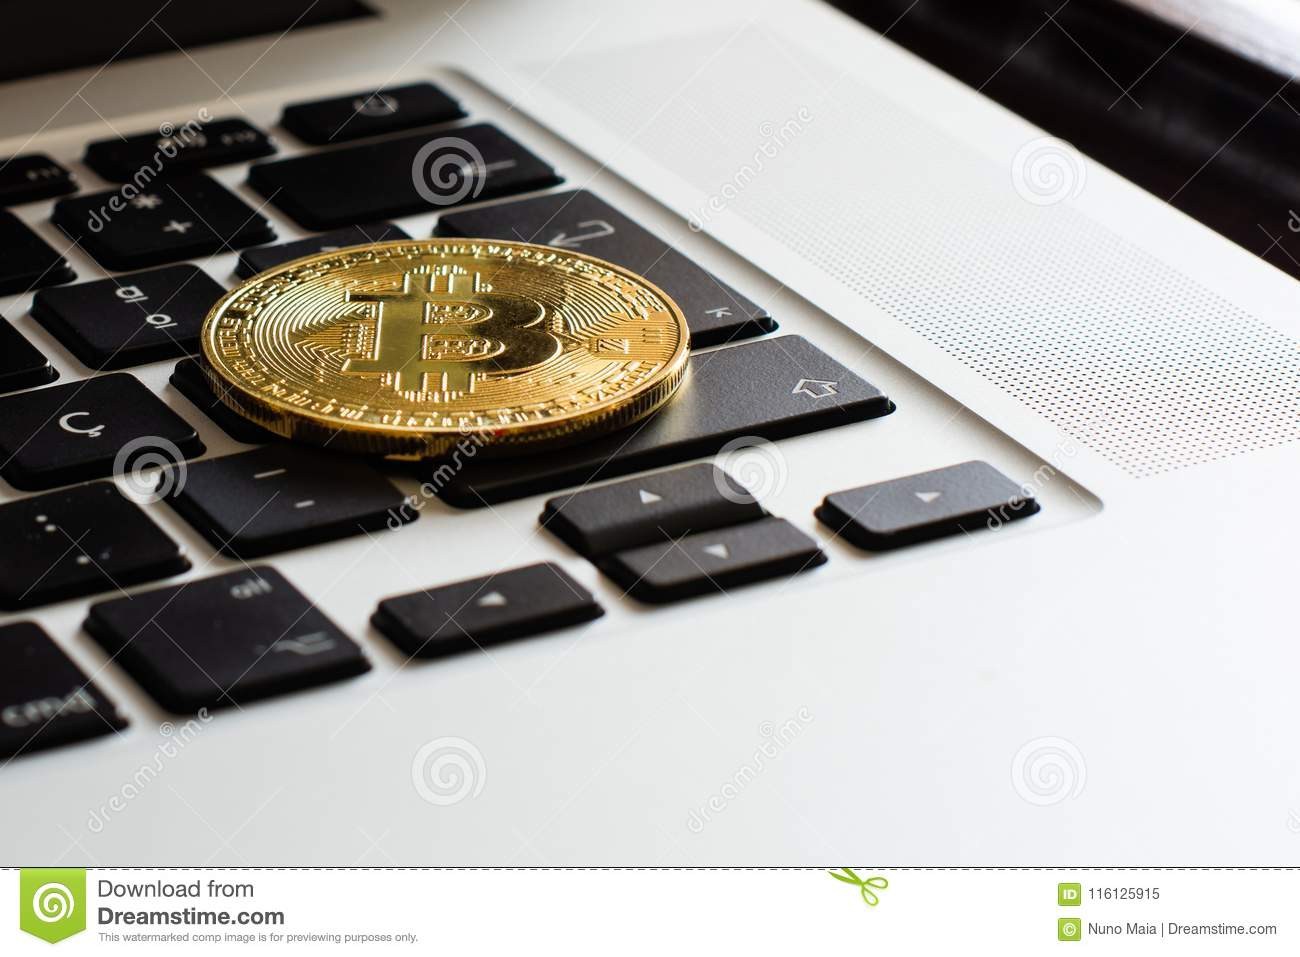 Bitcoin over a laptop`s keyboard